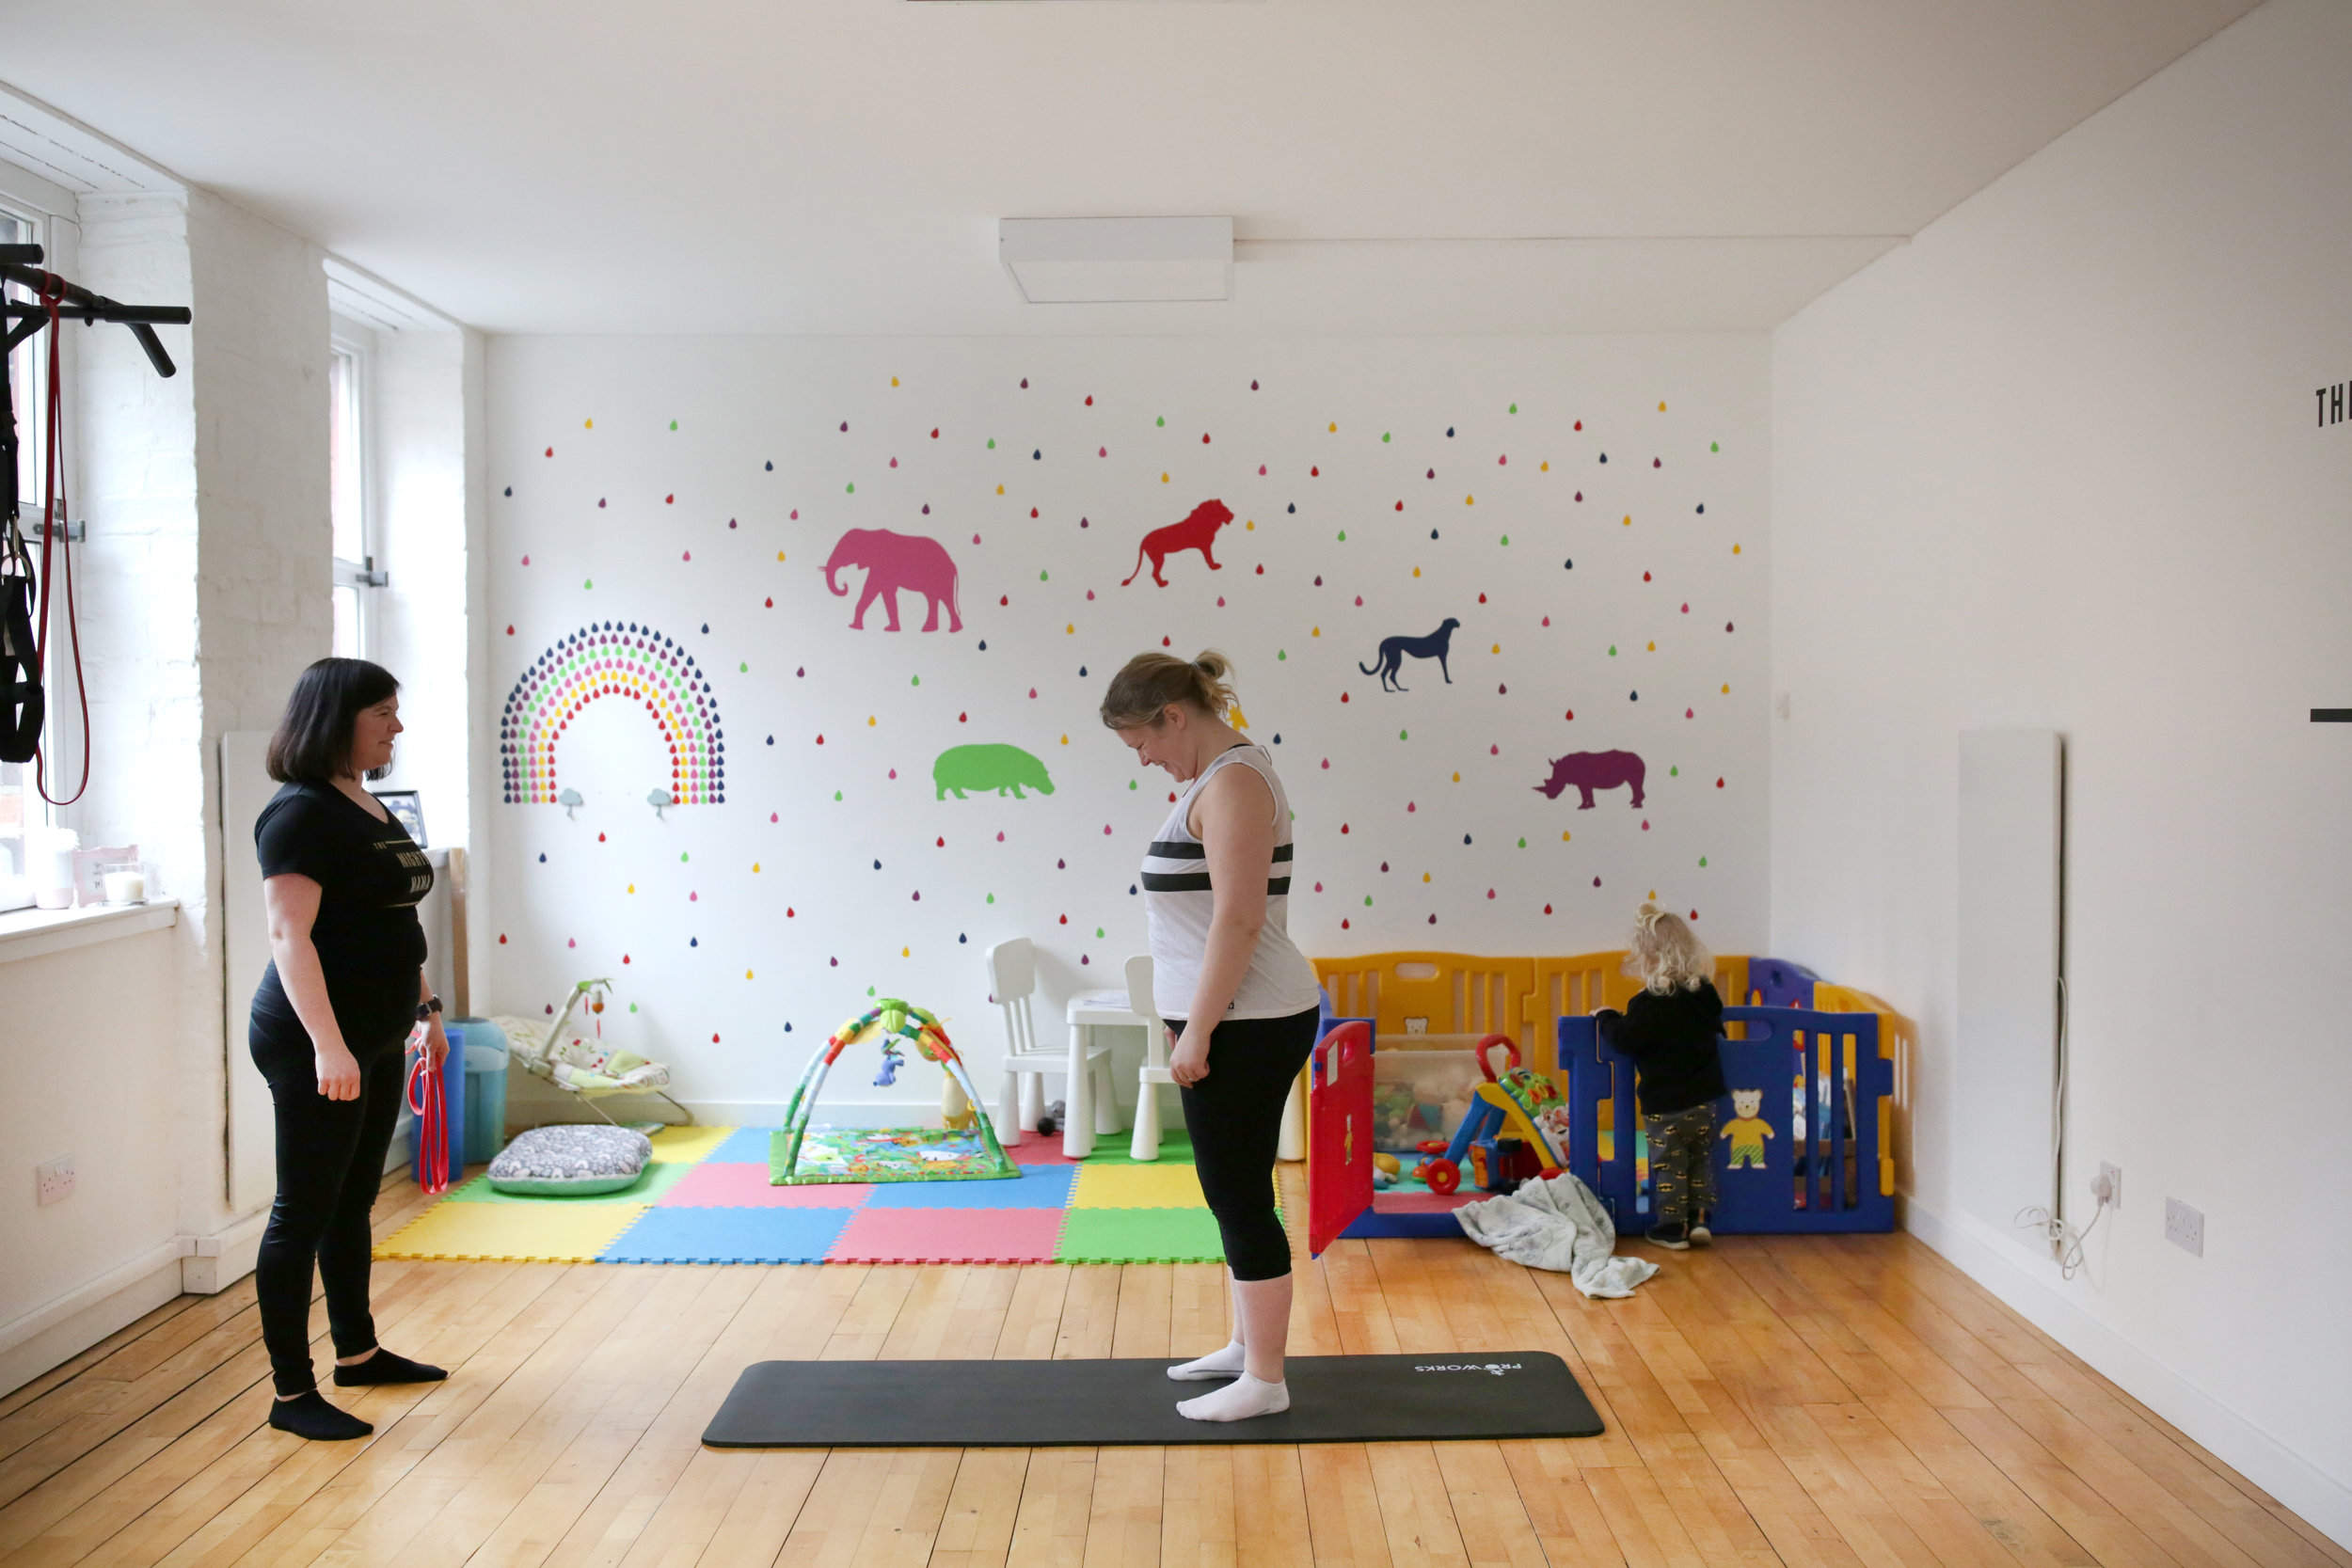 Our children's area has a selection of toys, a playpen and baby seats to make it easier to entertain them when you are getting your workout in -photograph provided by    Denise MacDonald Photography